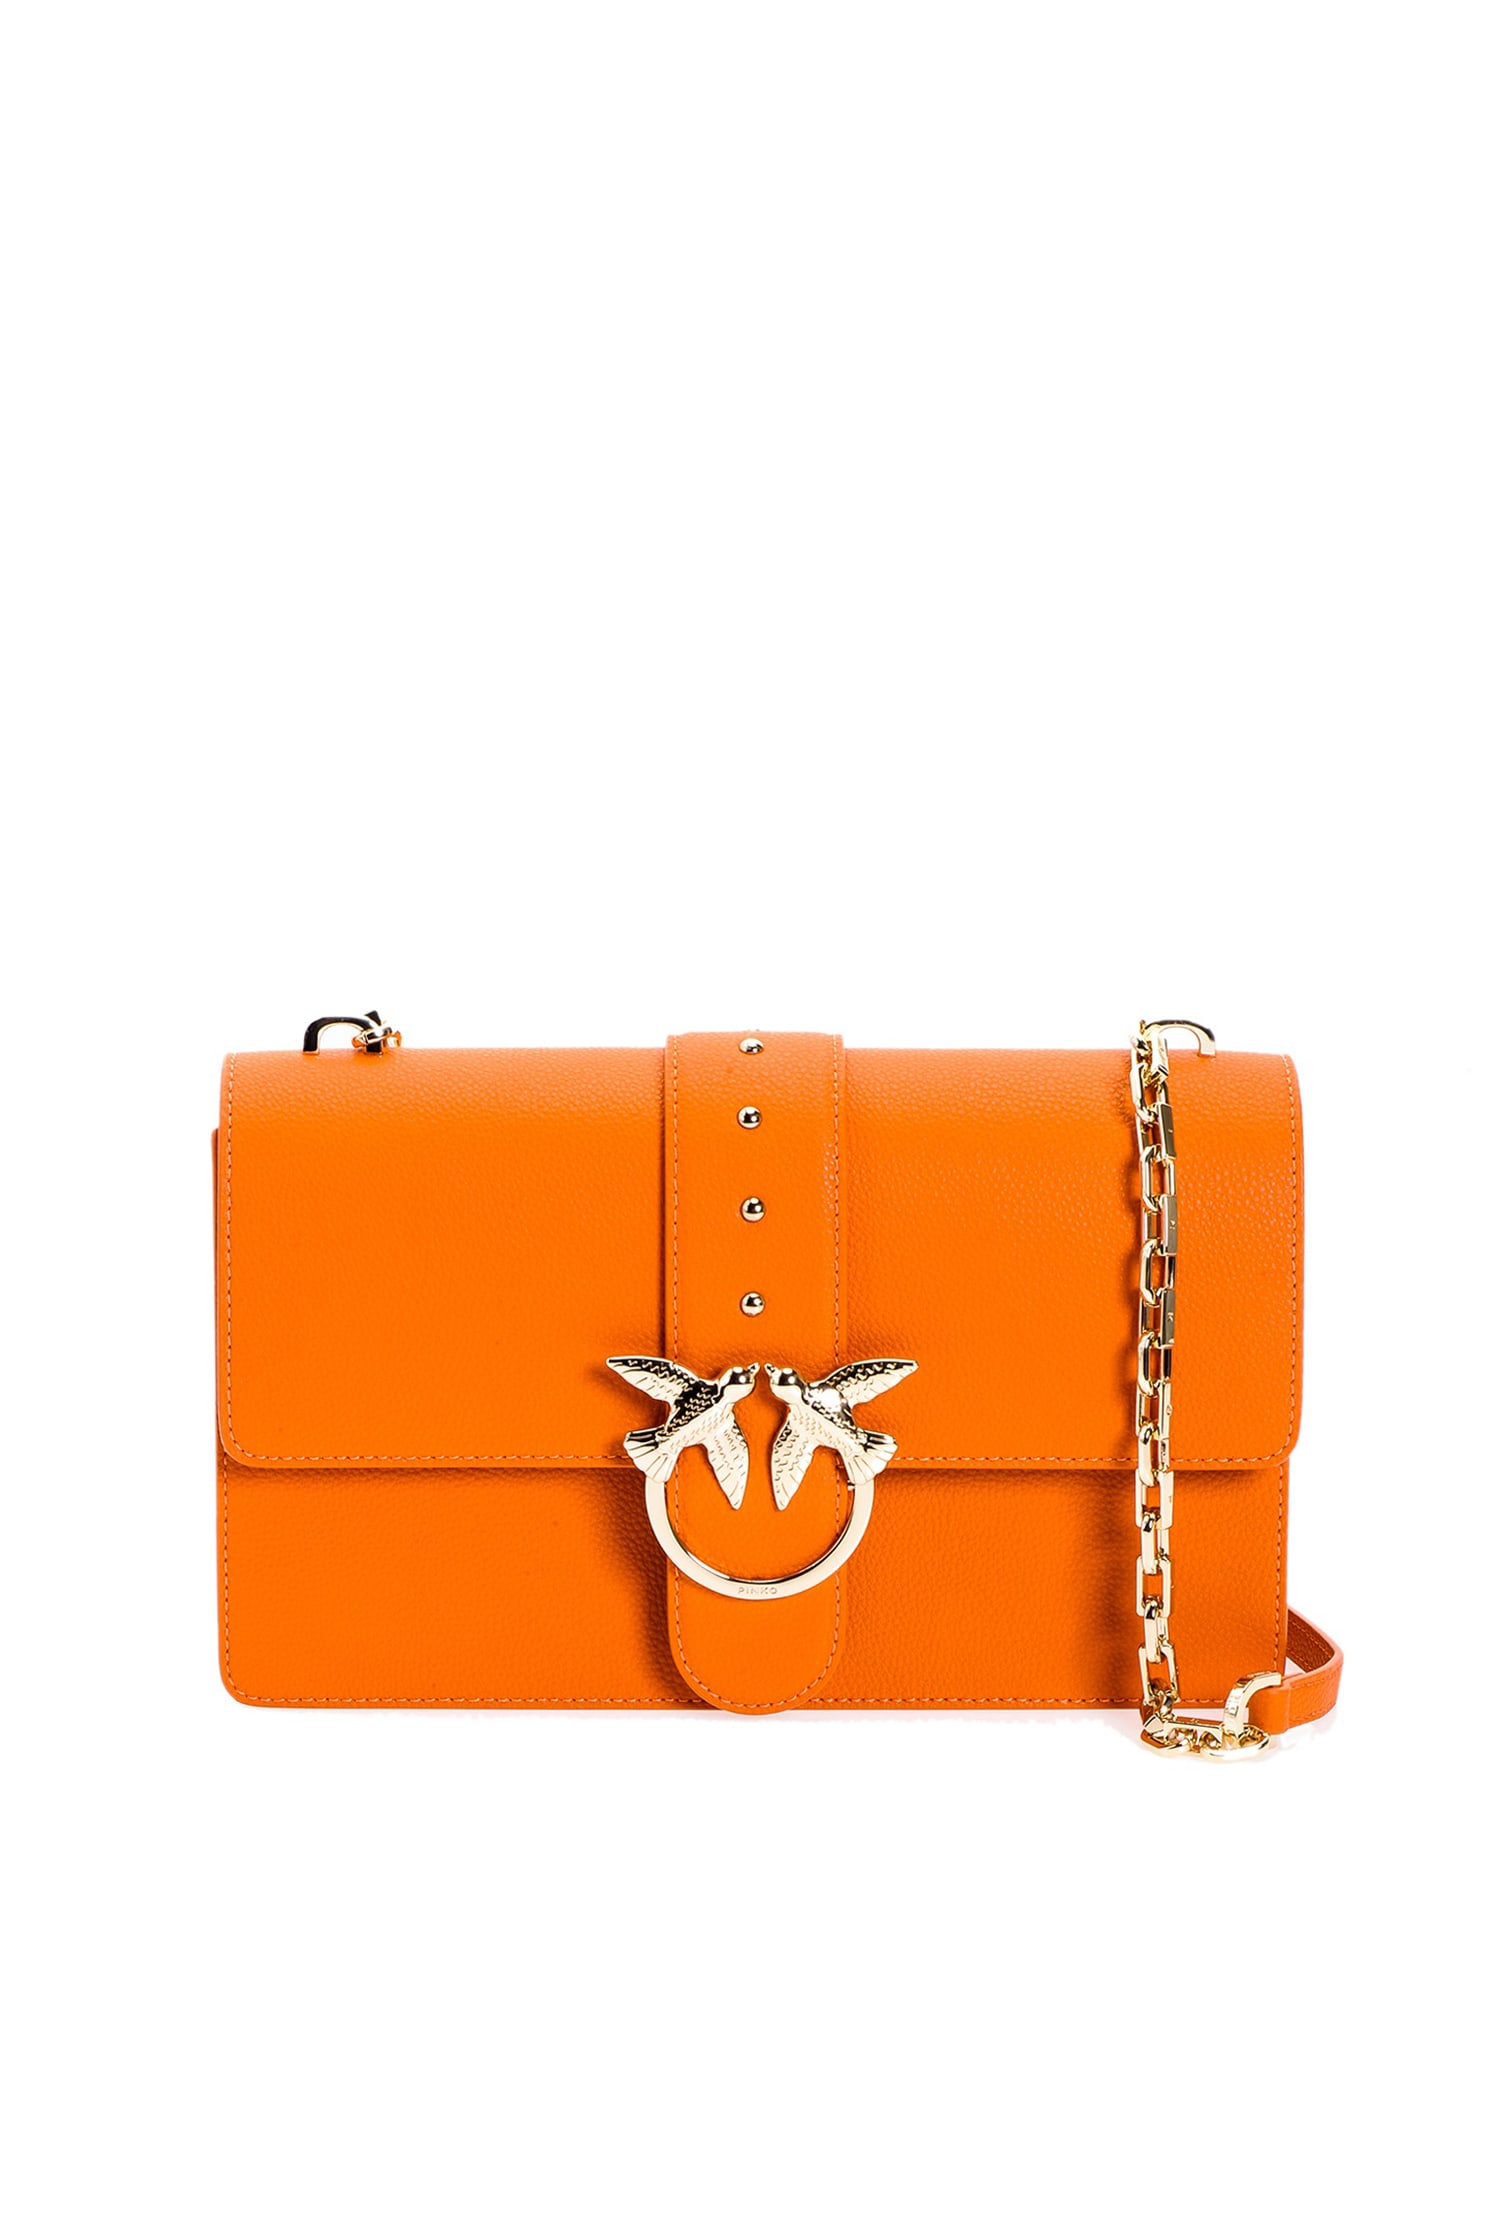 SHOPPING ON LINE PINKO LOVE BAG SIMPLY IN PELLE BOTTALATA NEW COLLECTION WOMEN'S SPRING SUMMER 2020